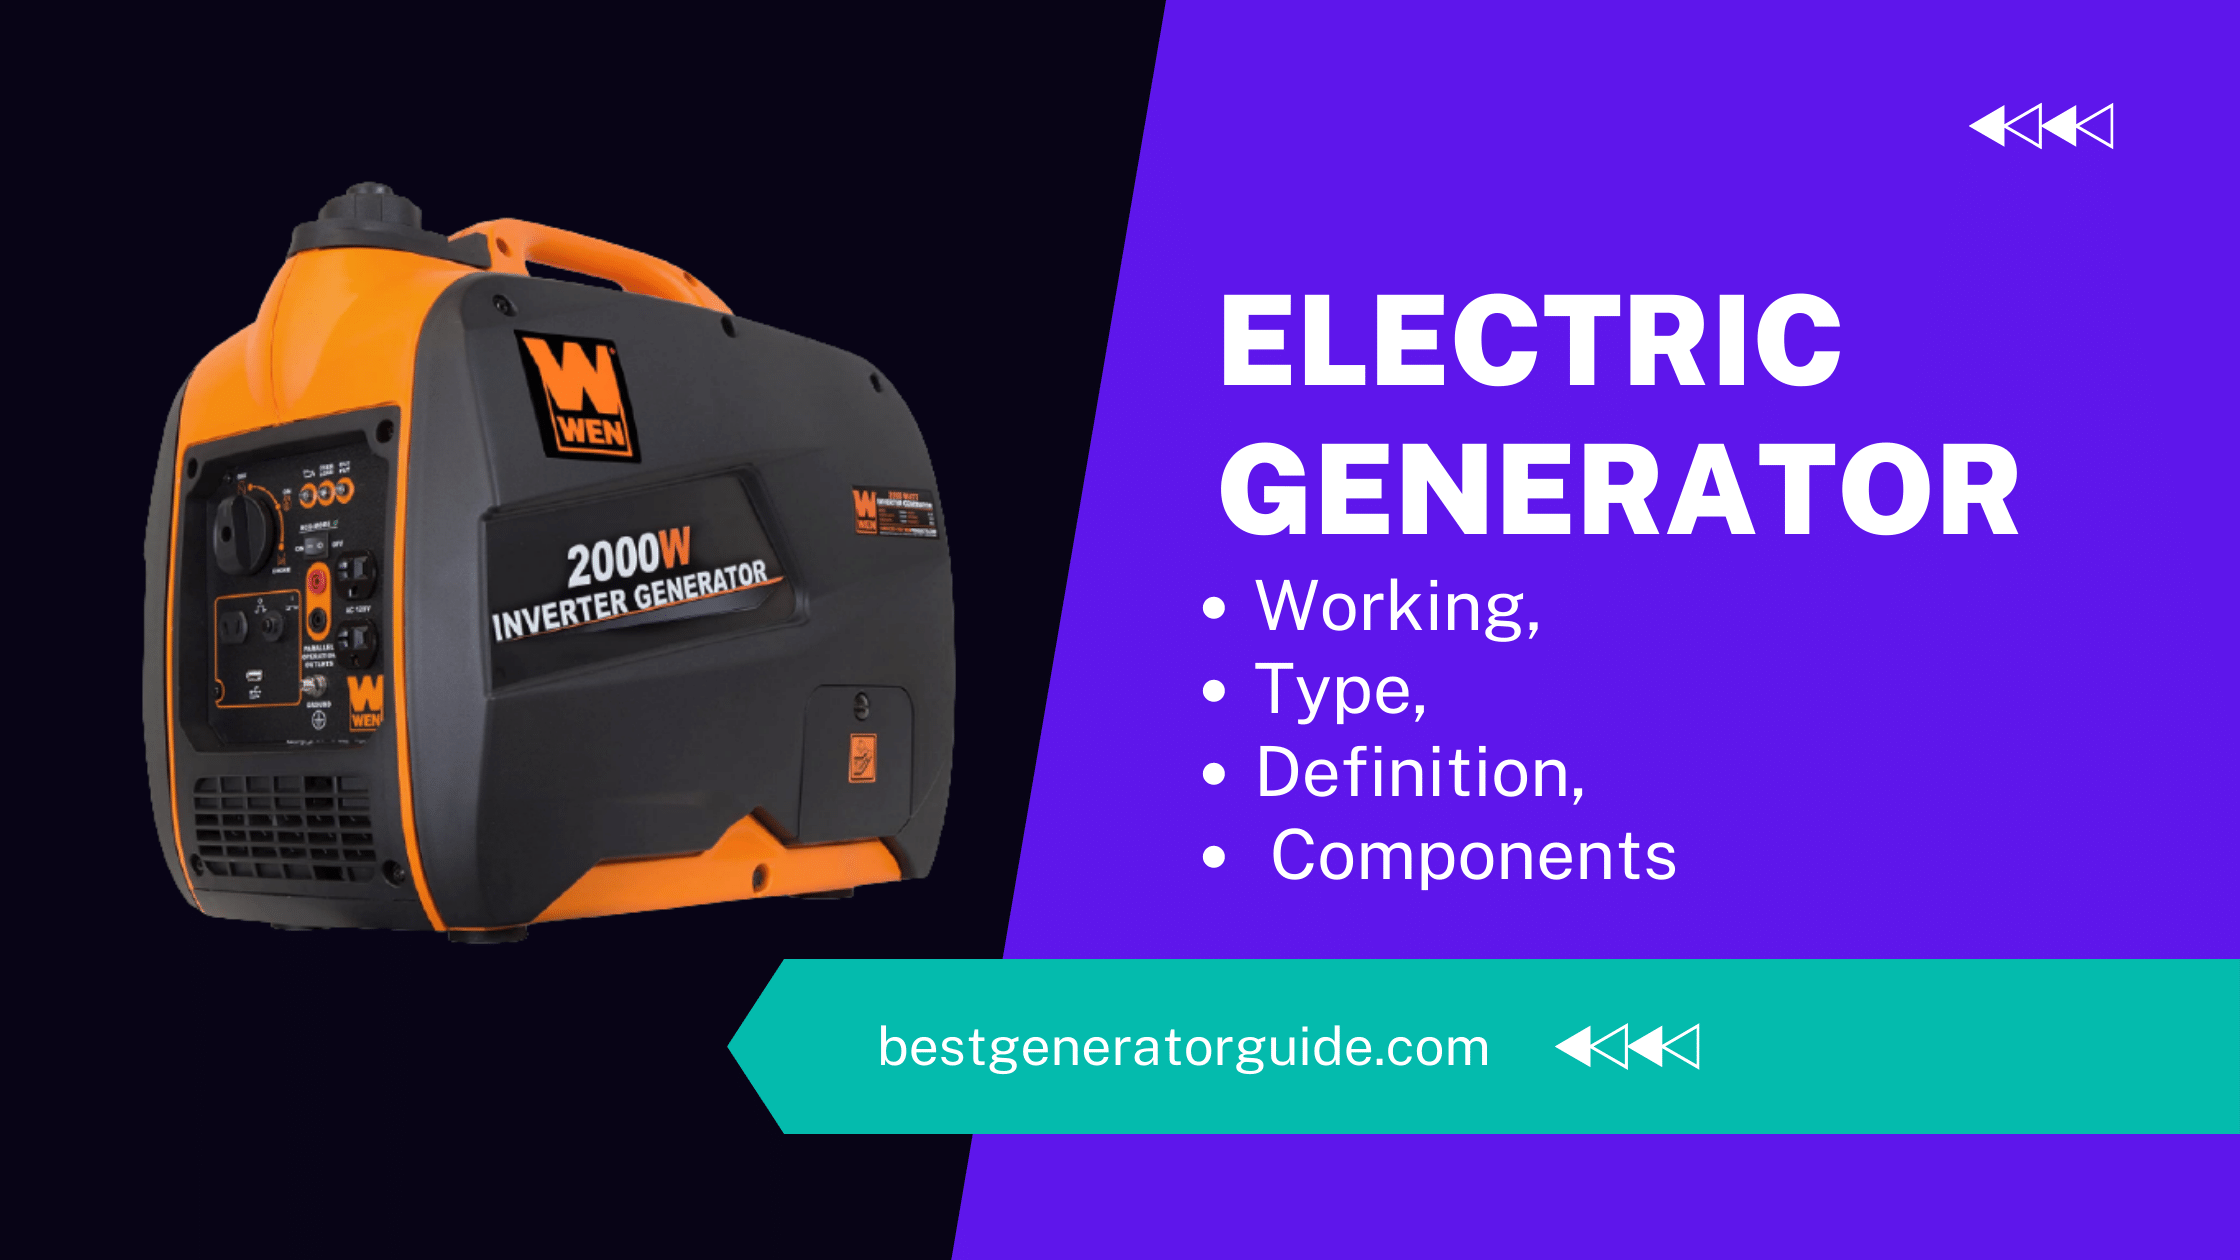 Electric Generator: What is it? Working, Type, Definition, Components